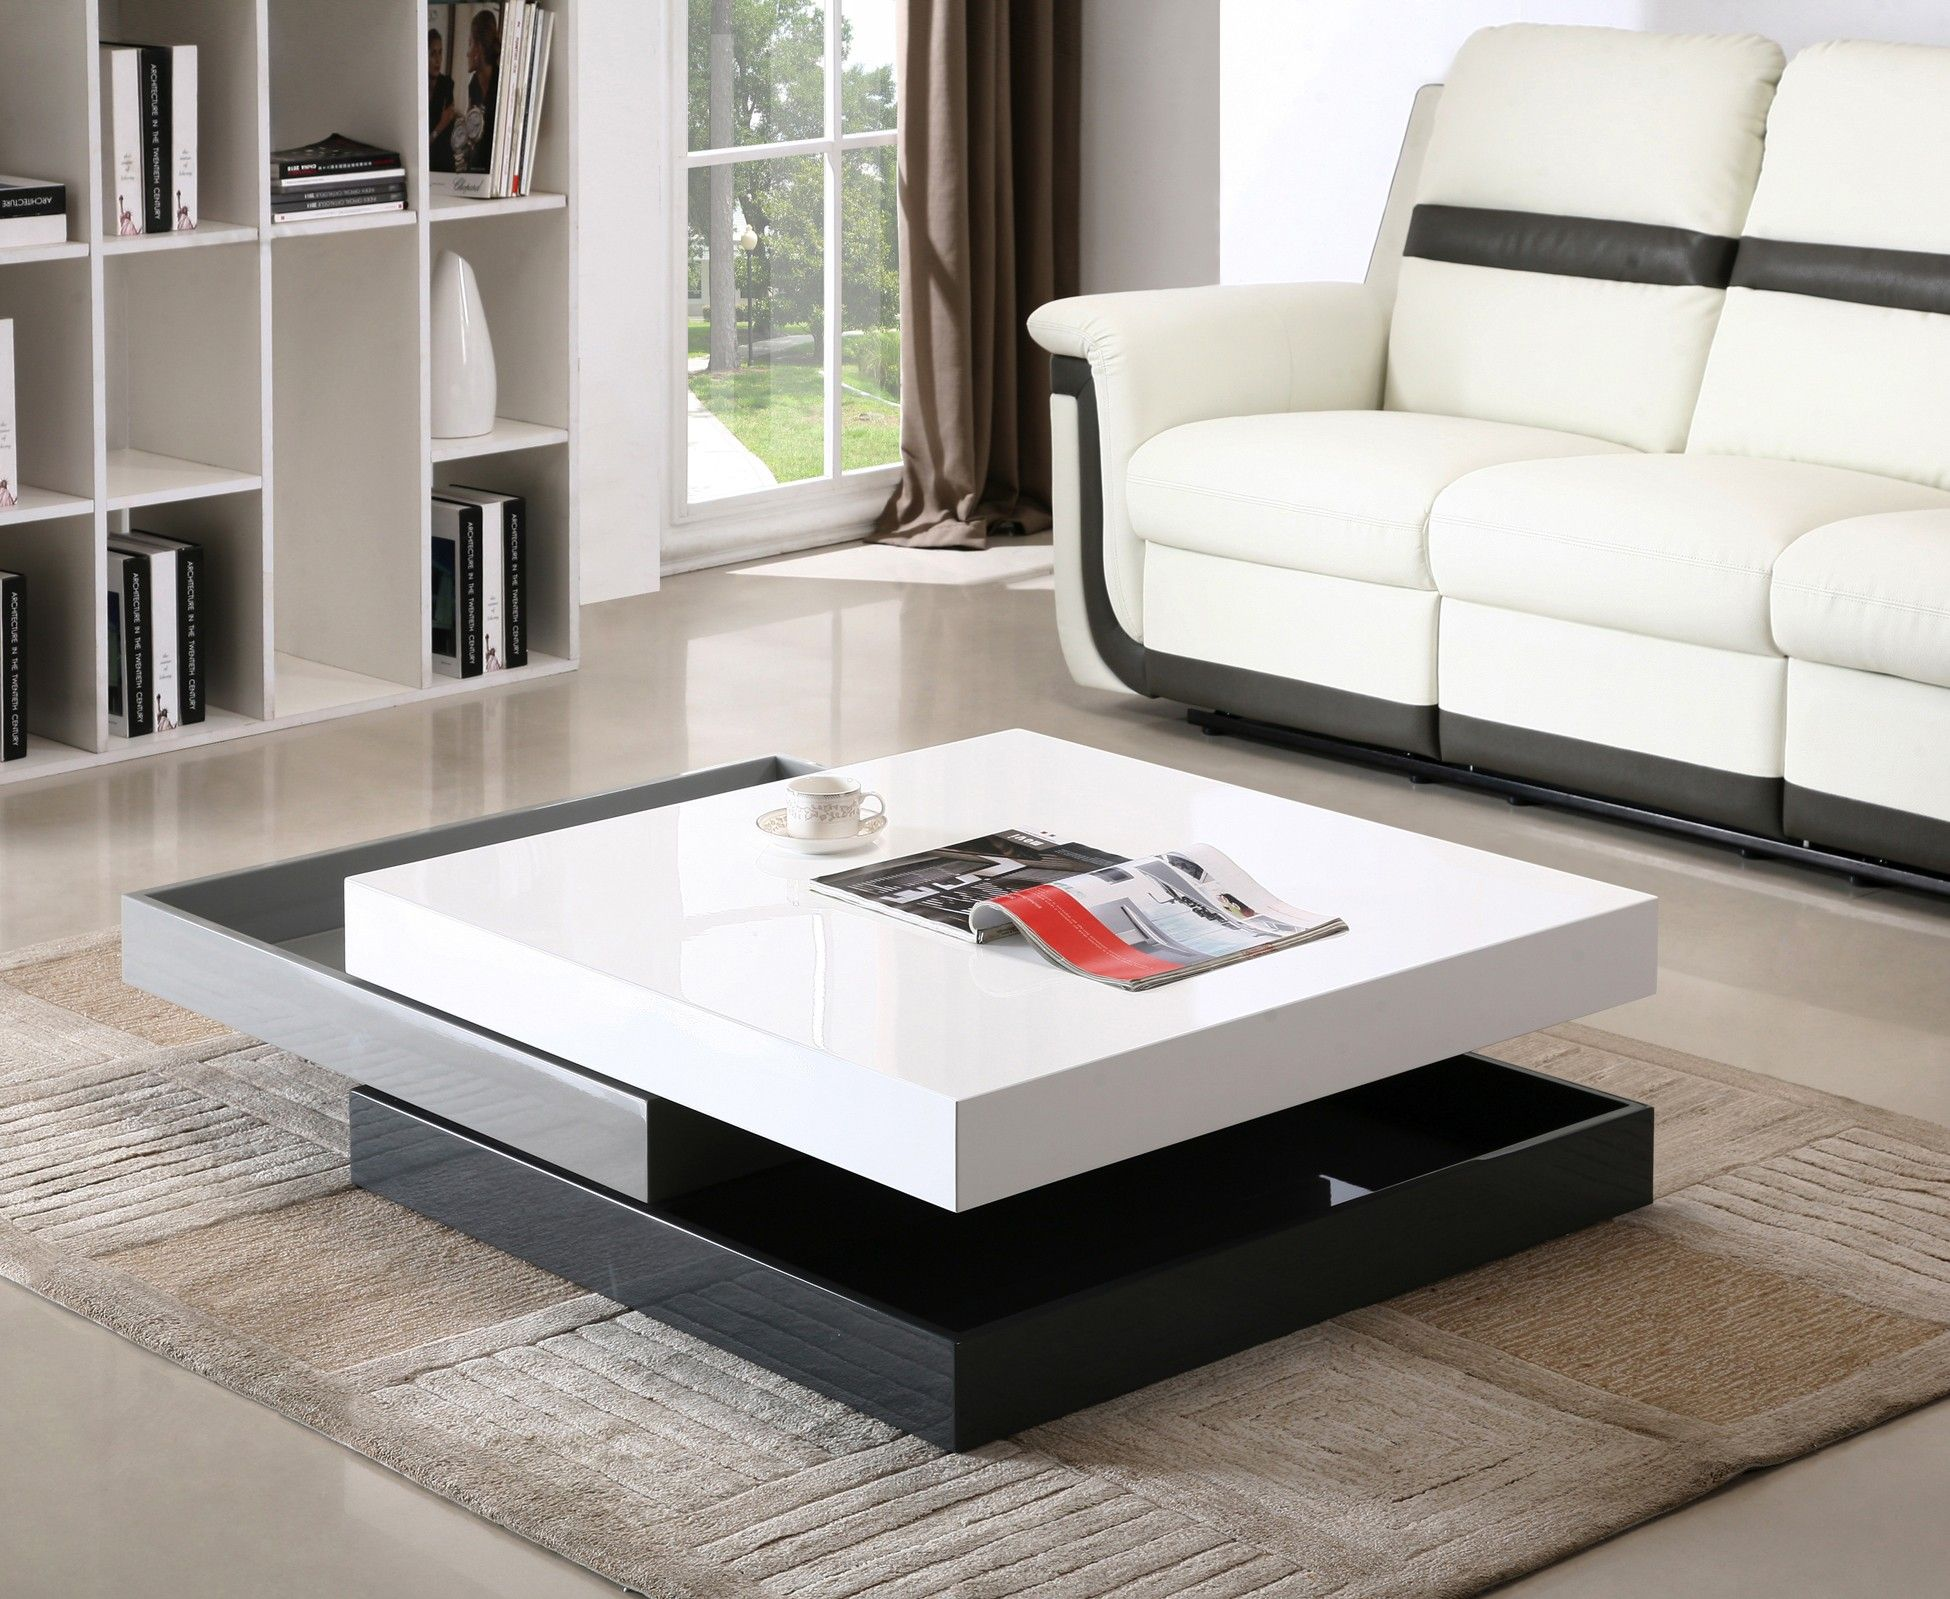 J & M Modern Rotary Coffee Table 3 Levels CW01